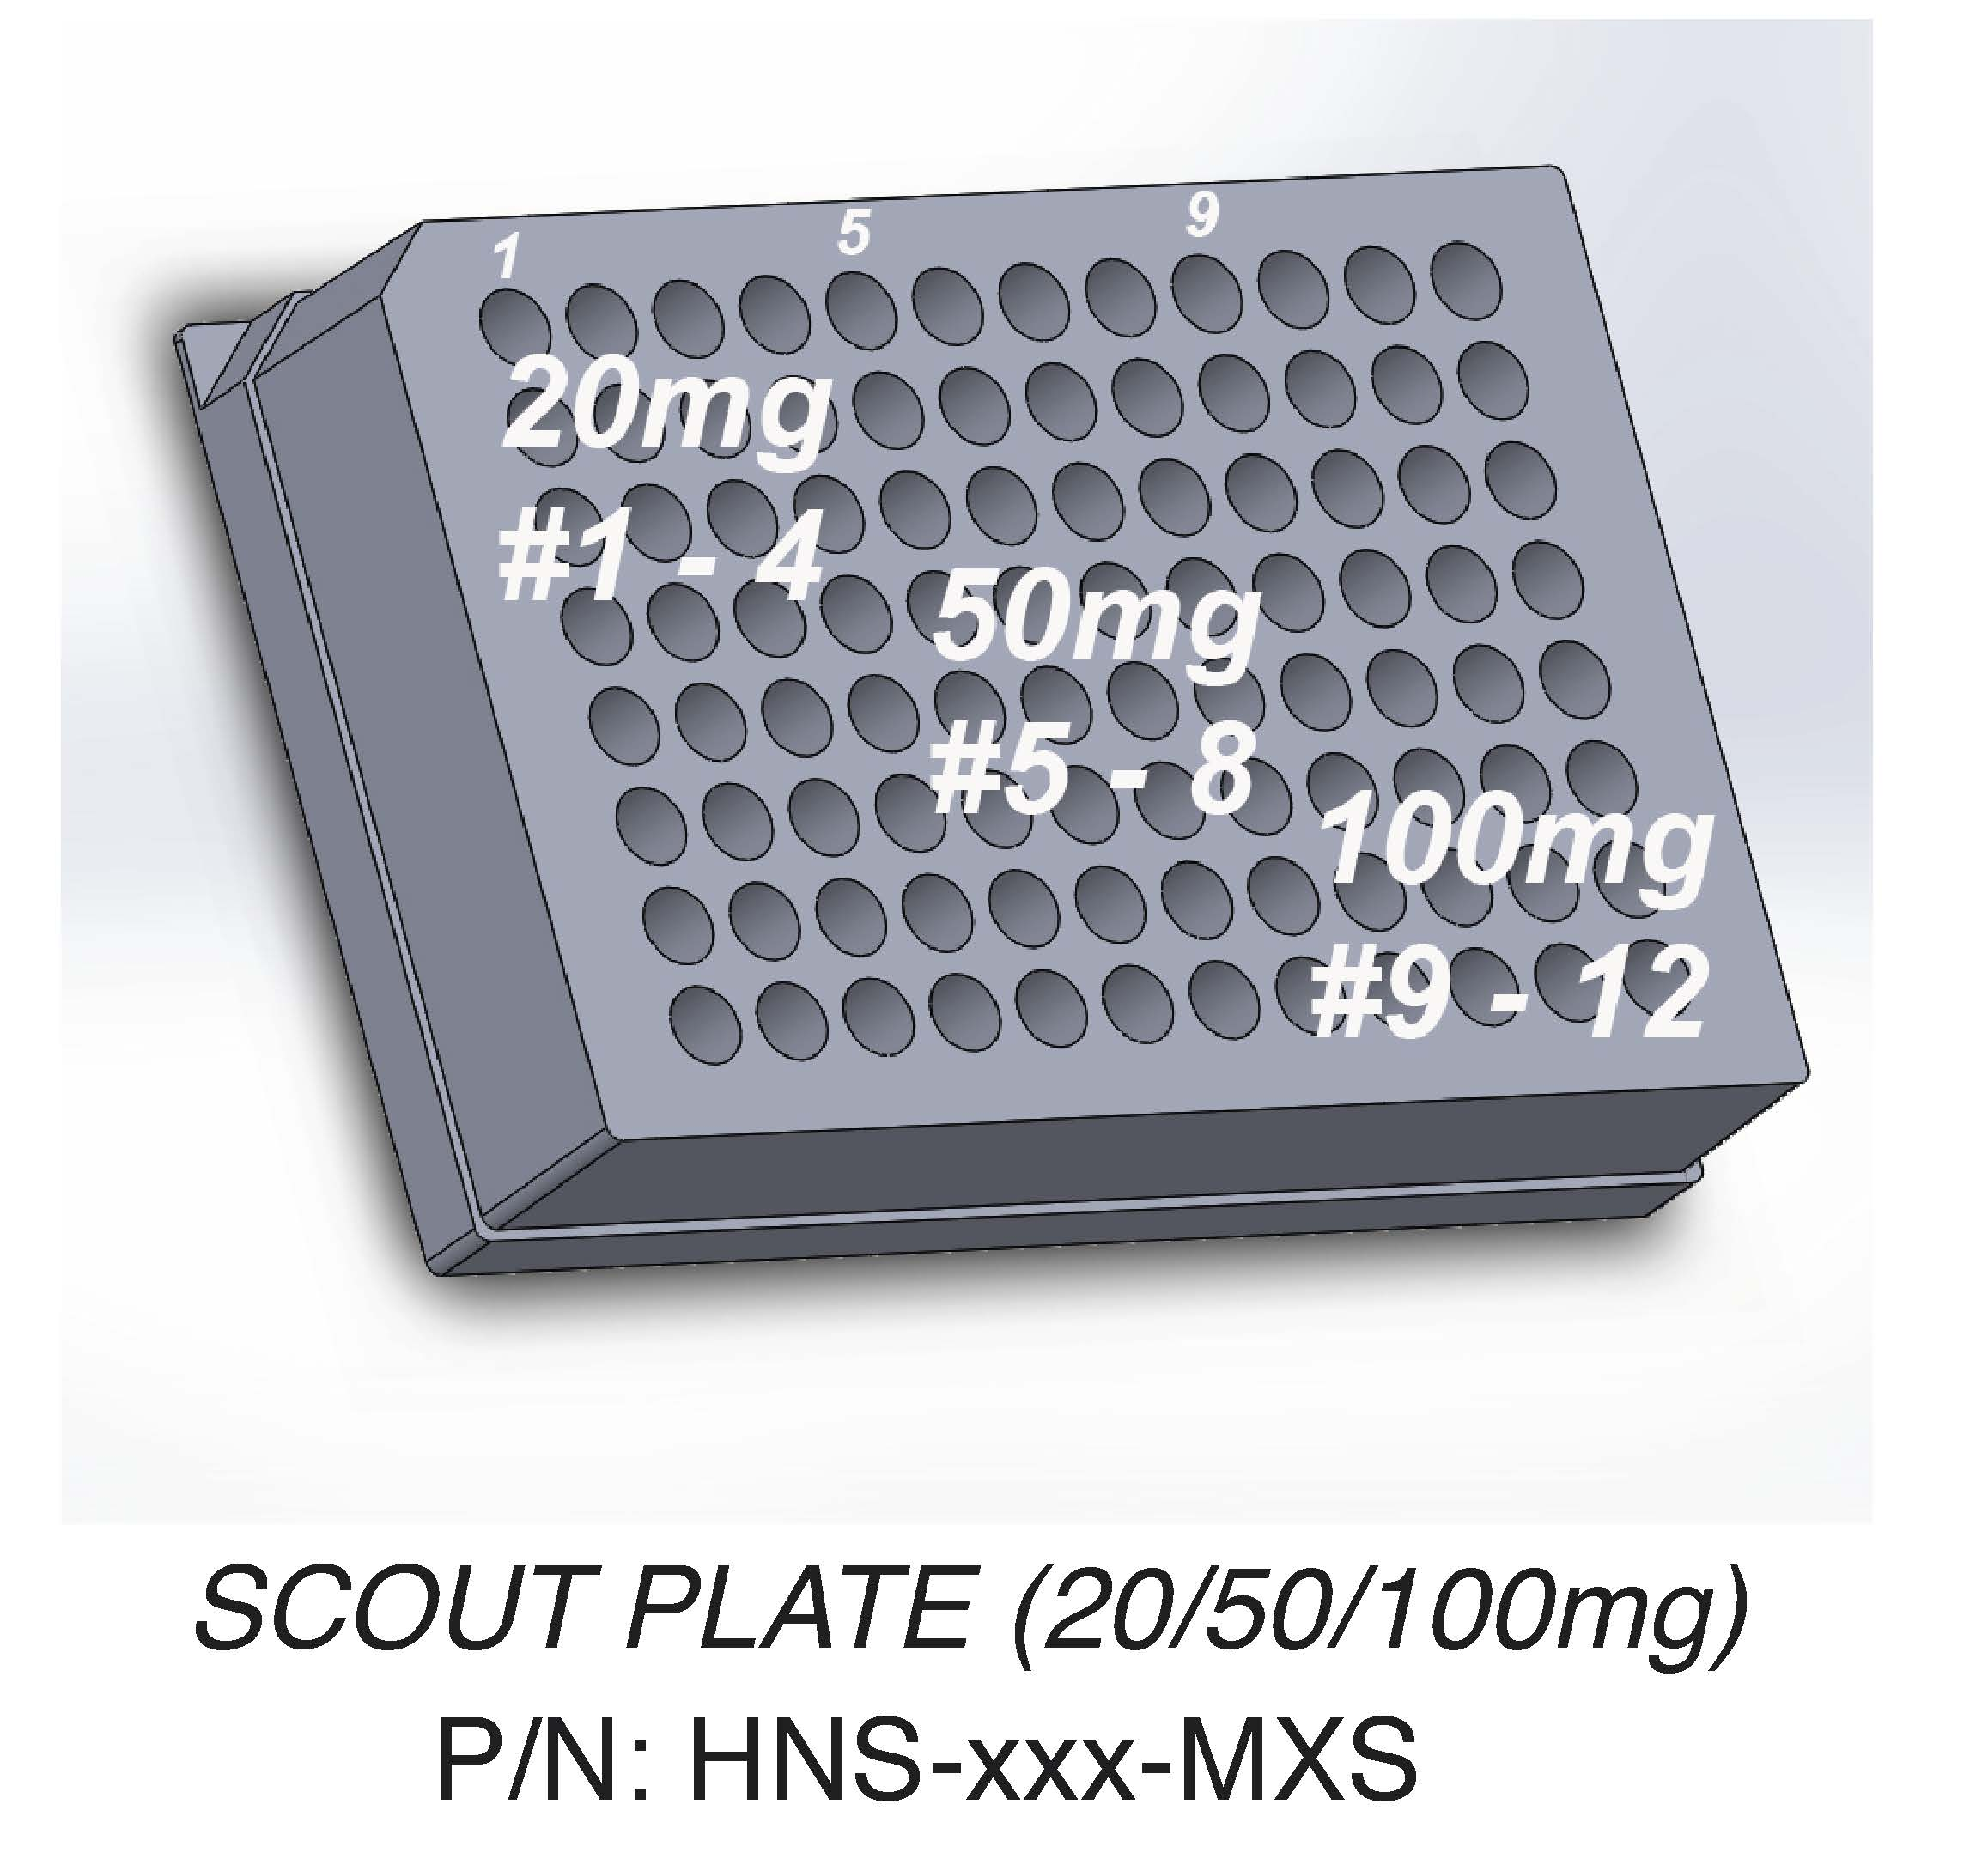 Scout Plates